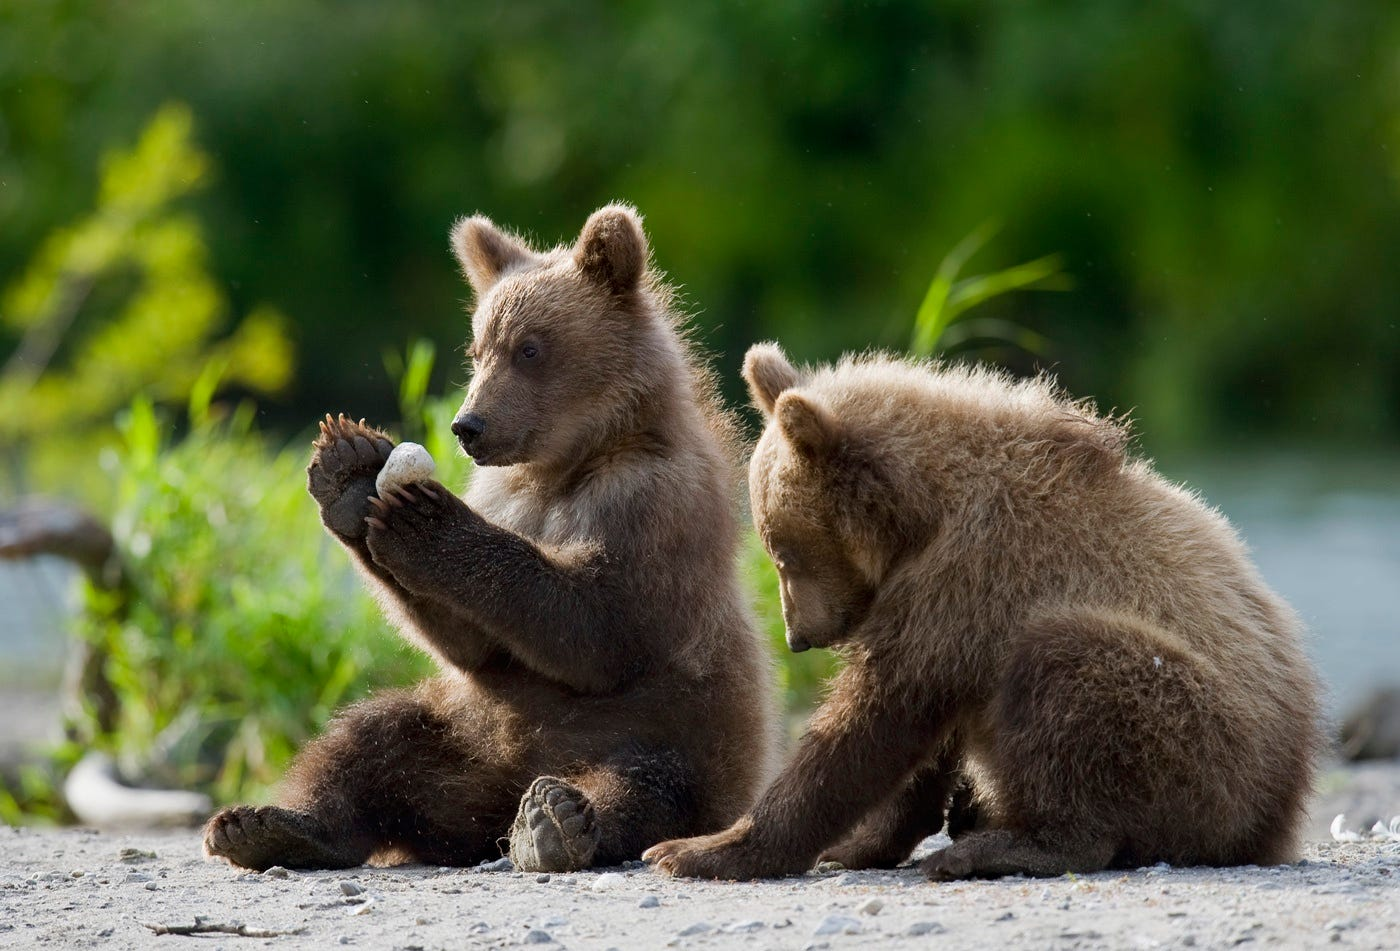 Ungentle charm of Kamchatka bears in photos by Sergey Ivanov - 11